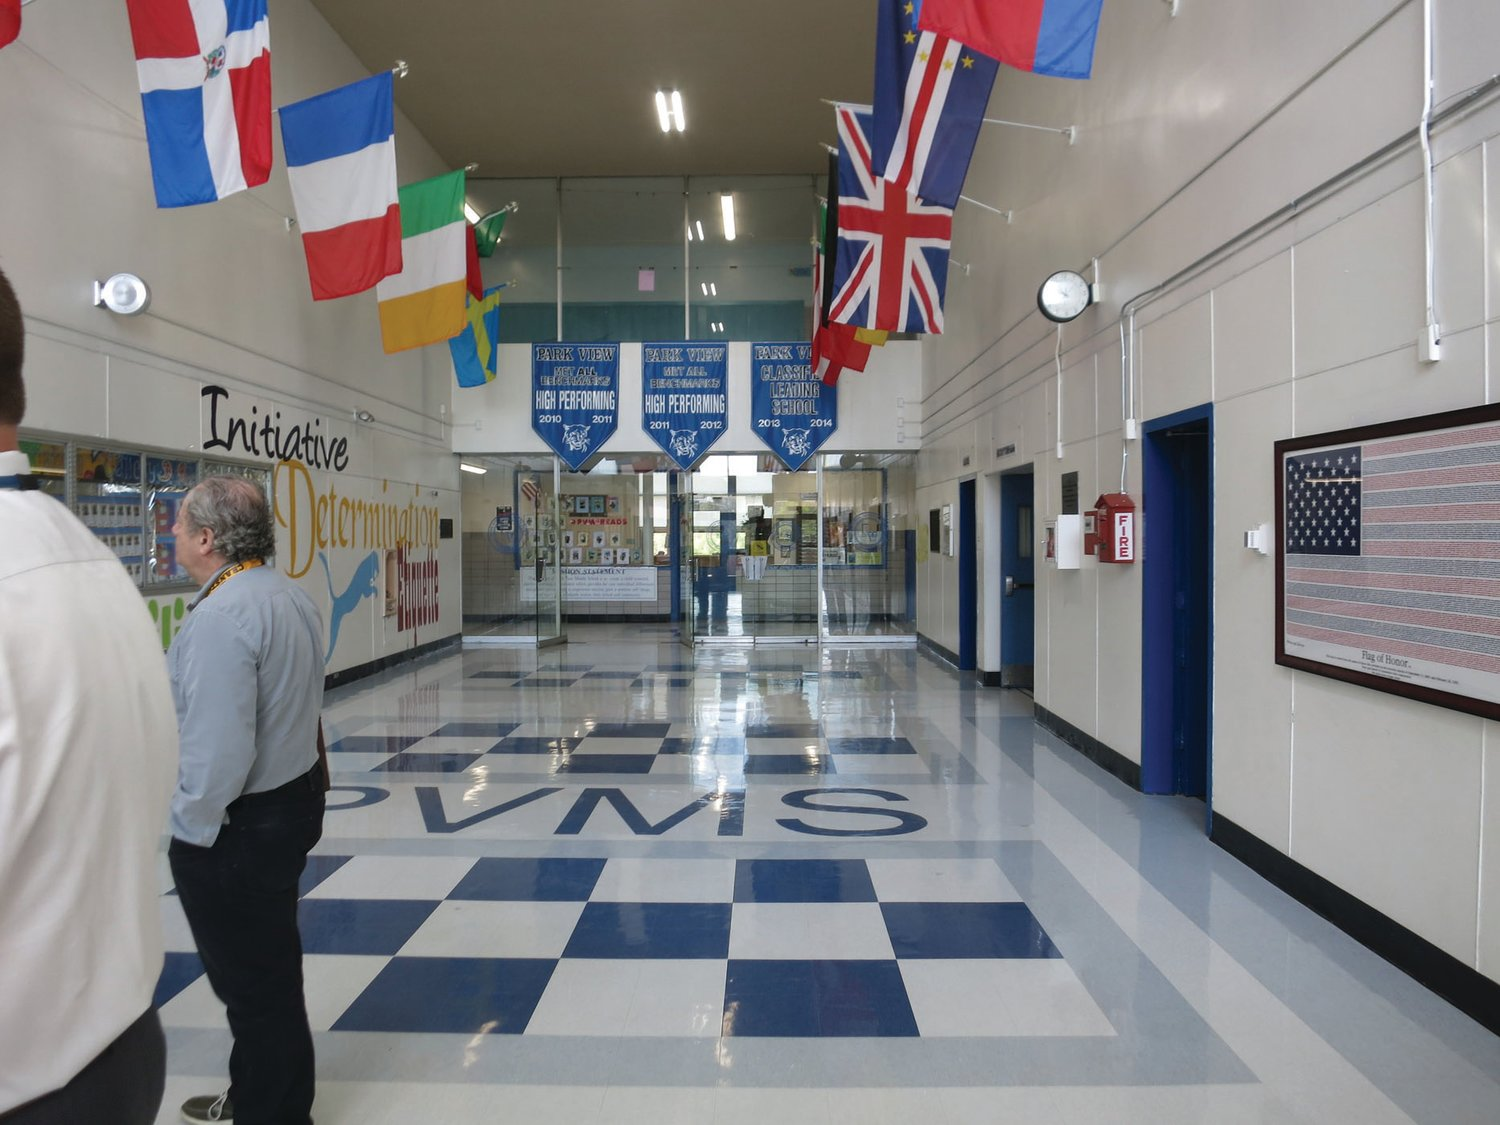 WHAT WE HAVE NOW: Currently, the entryway and lobby at Park View provide access to both the gymnasium and the auditorium, while the main office check-in and waiting area for visitors to the school and students awaiting pickup is through the glass doors and hallway ahead.